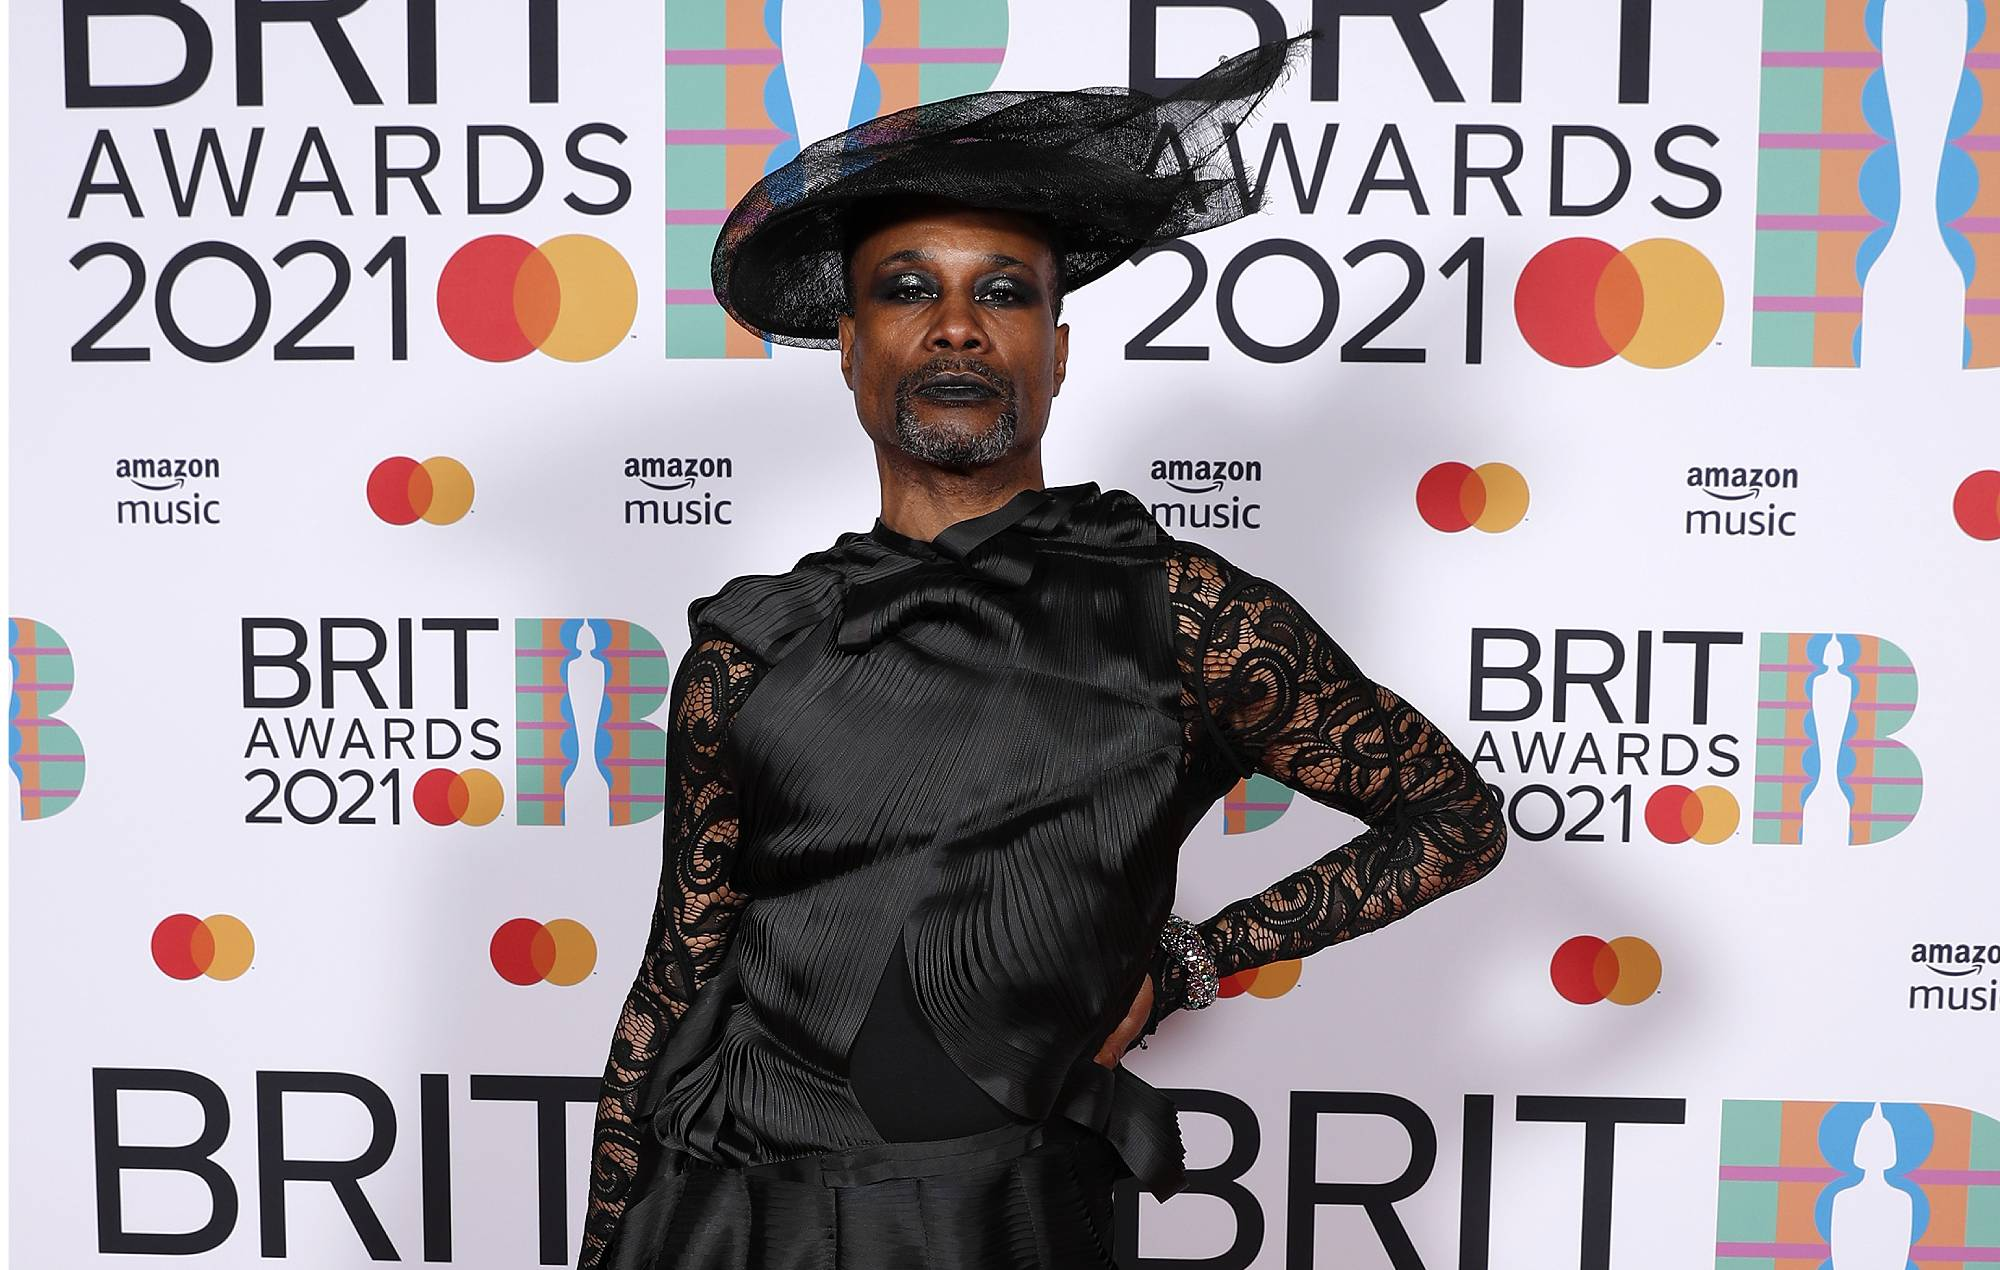 Billy Porter poses in the media room during The BRIT Awards 2021 at The O2 Arena on May 11, 2021 in London, England. (Photo by JMEnternational/JMEnternational for BRIT Awards/Getty Images)